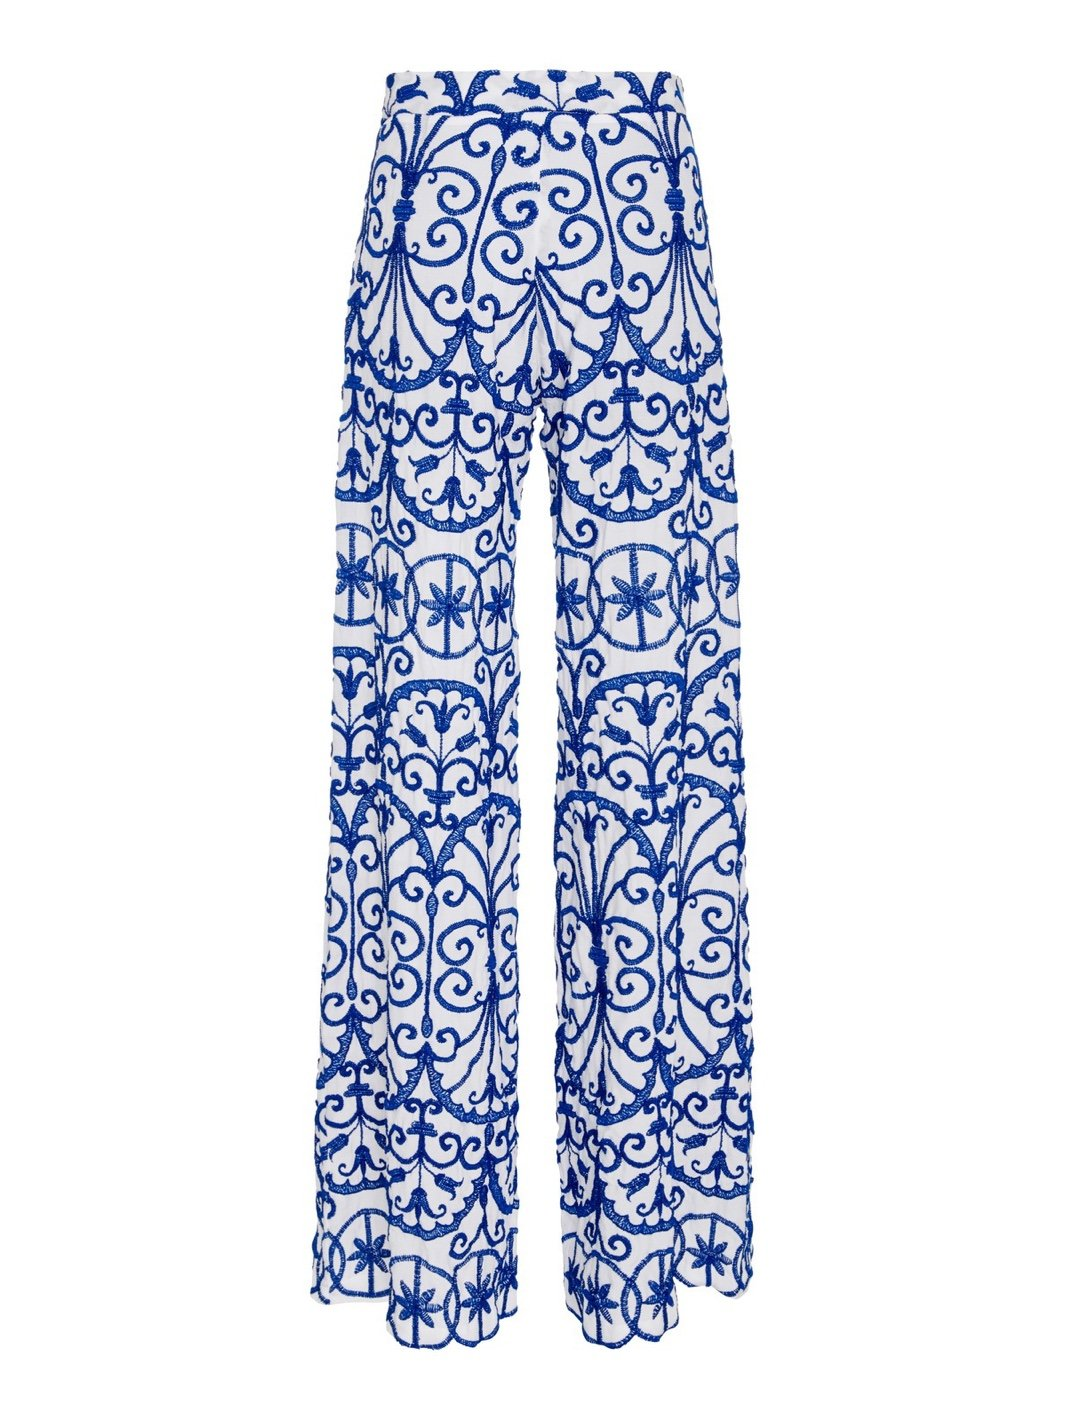 Amelianna Embroidered Pant - The Bobby Boga